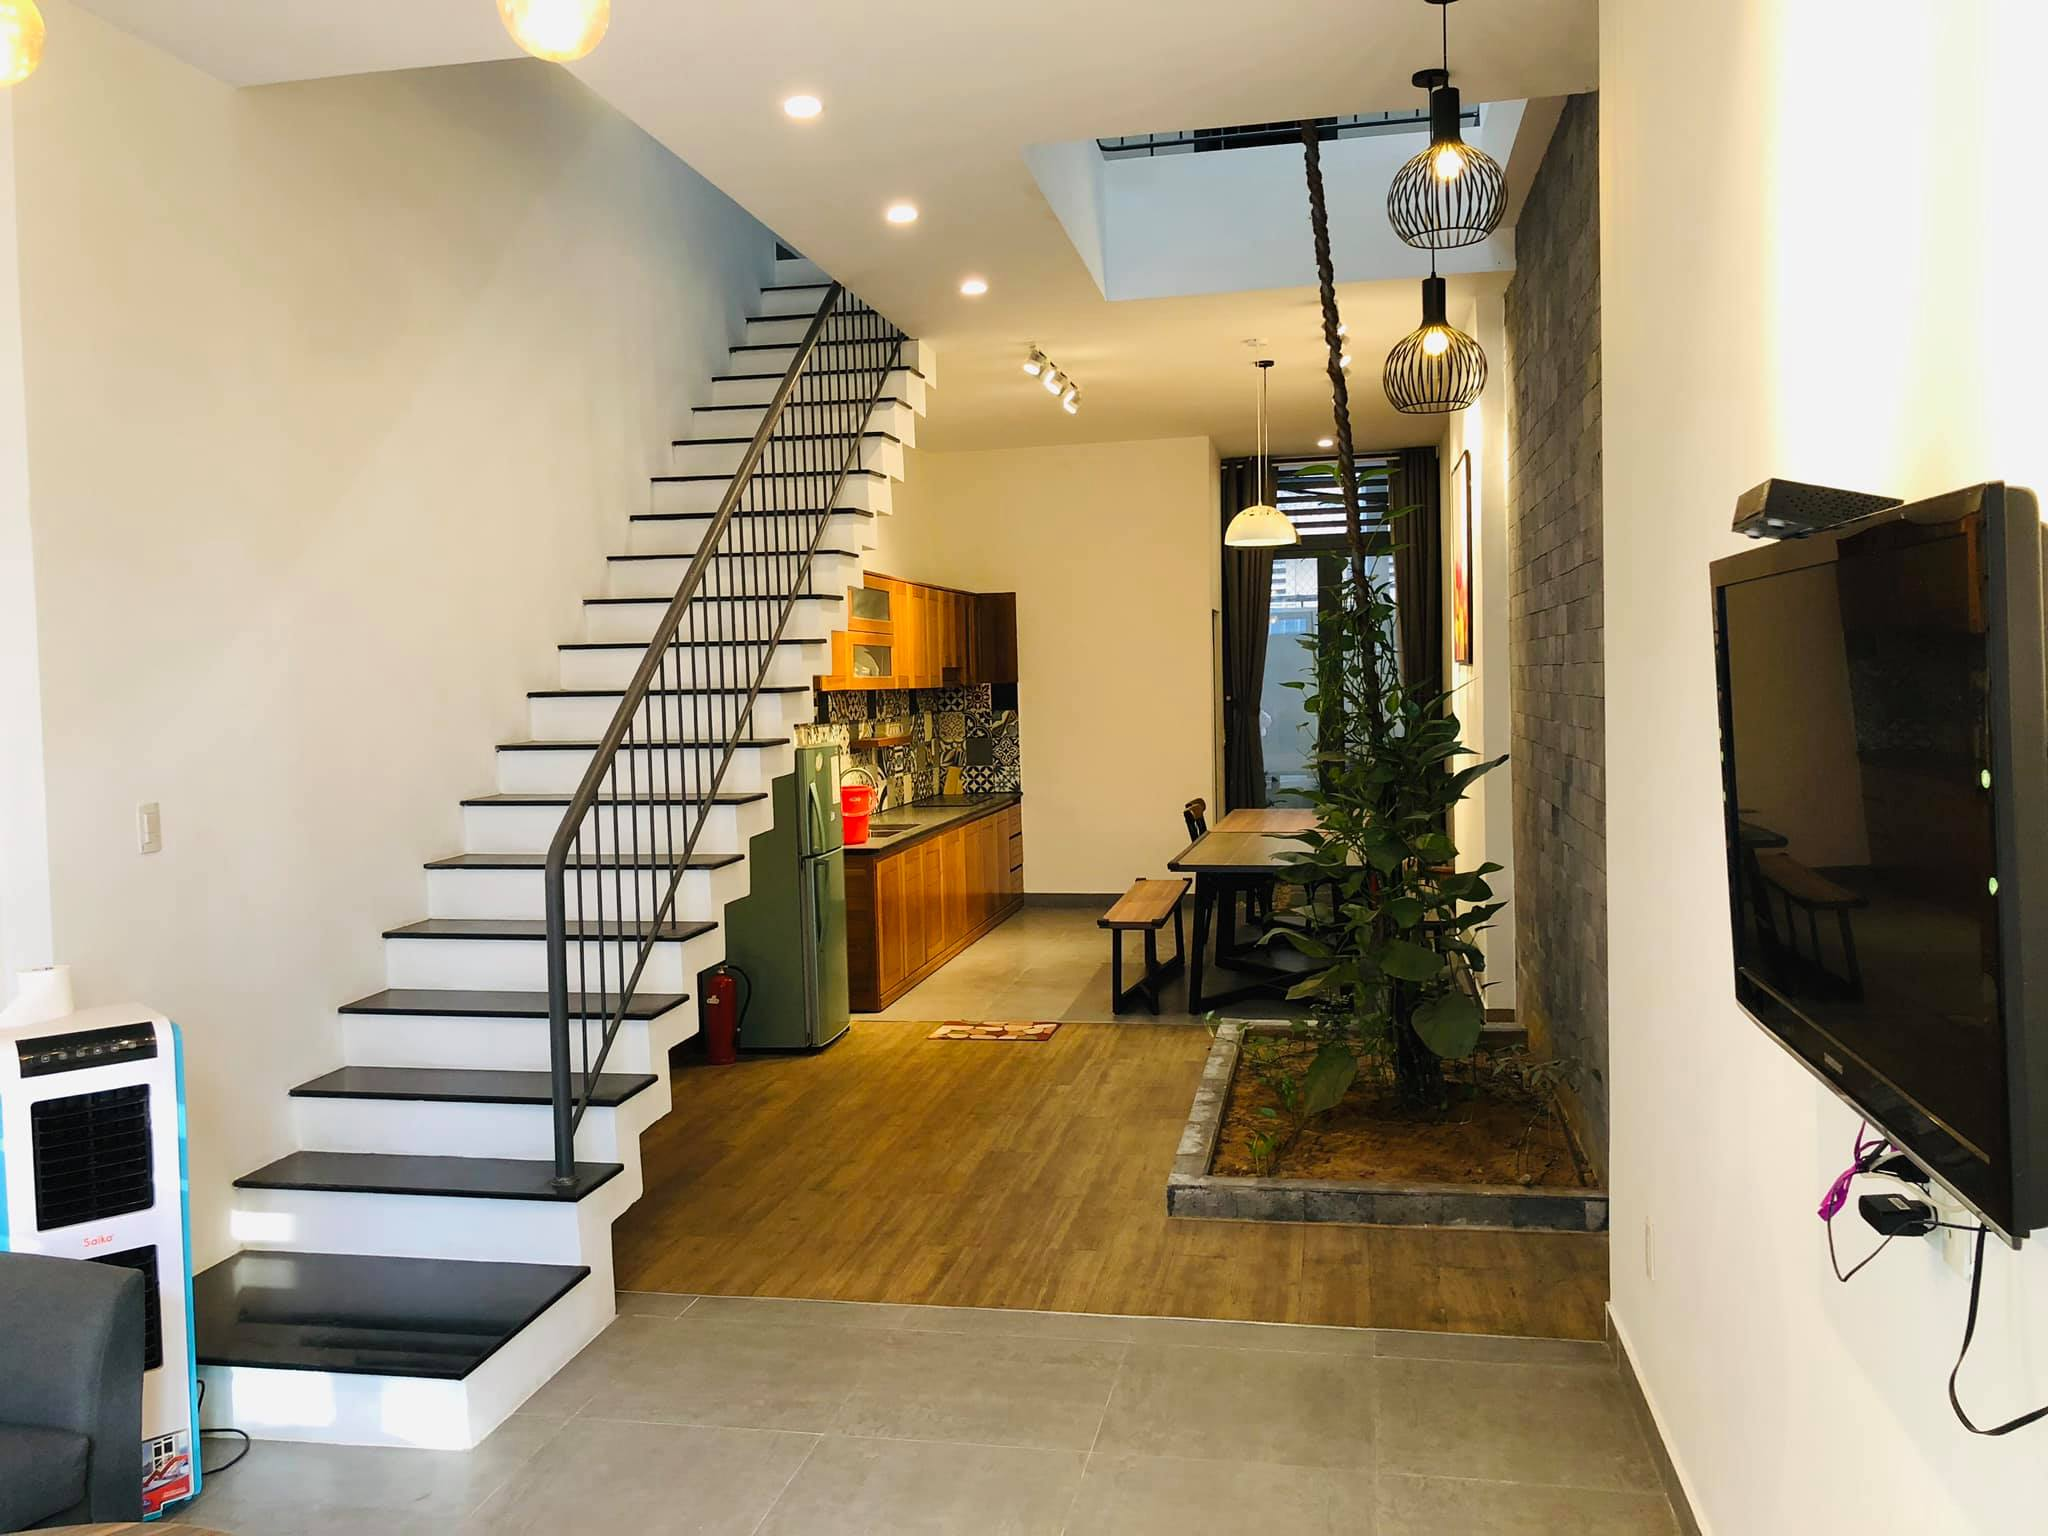 Furnished 3 bedroom house for rent near An Thuong – Great value for money